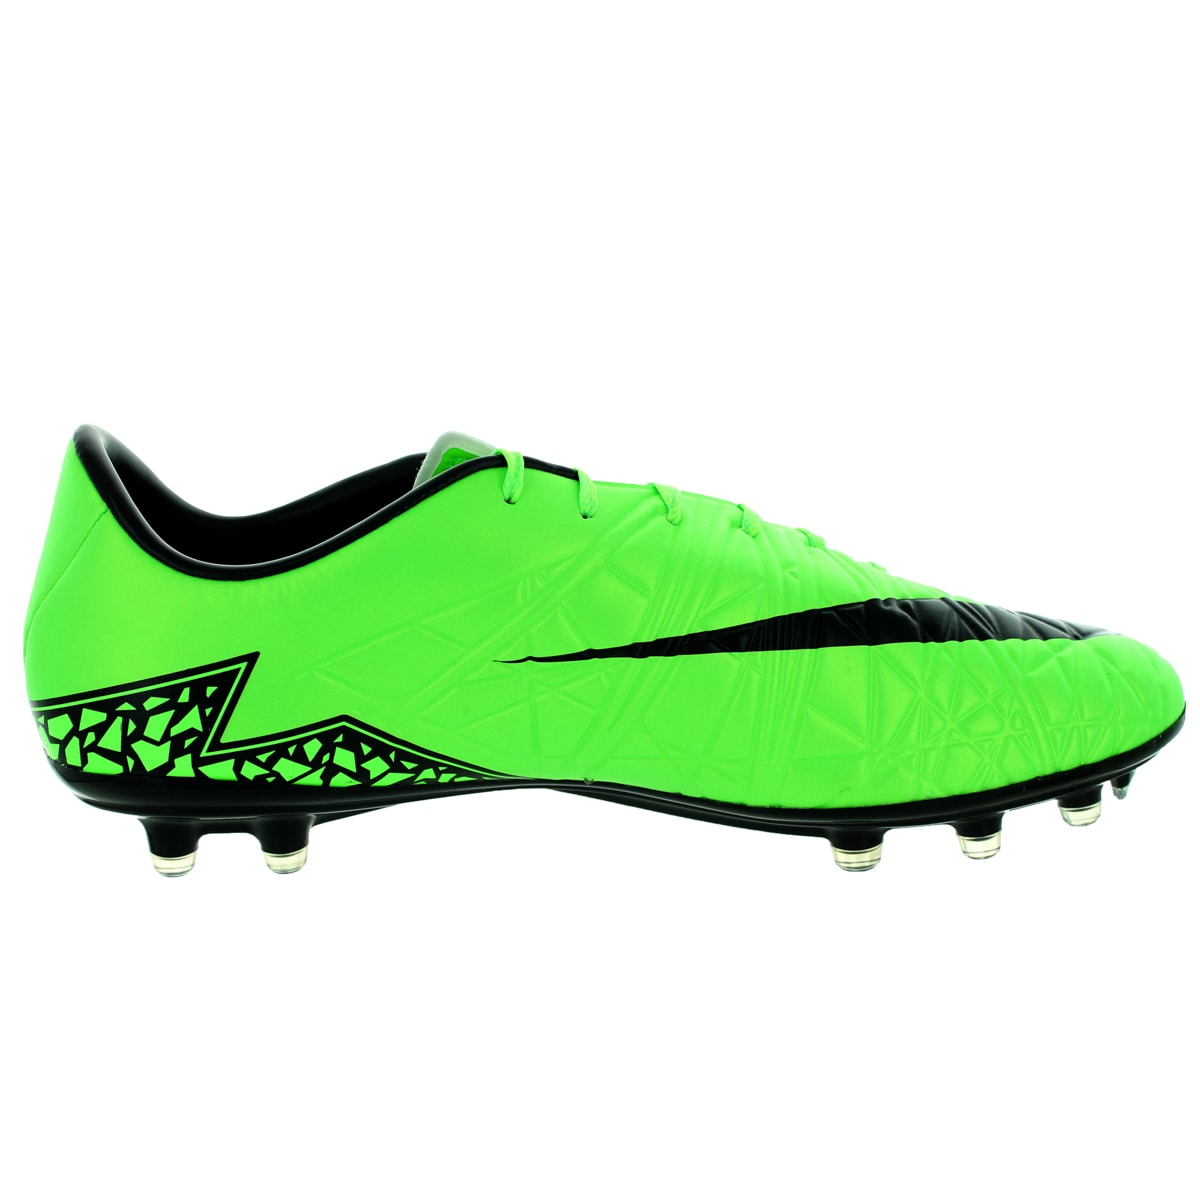 22949a83da8a Shop Nike Men s Hypervenom Phatal Ii Fg Green Strike Black Black Soccer  Cleat - Free Shipping Today - Overstock - 12118294